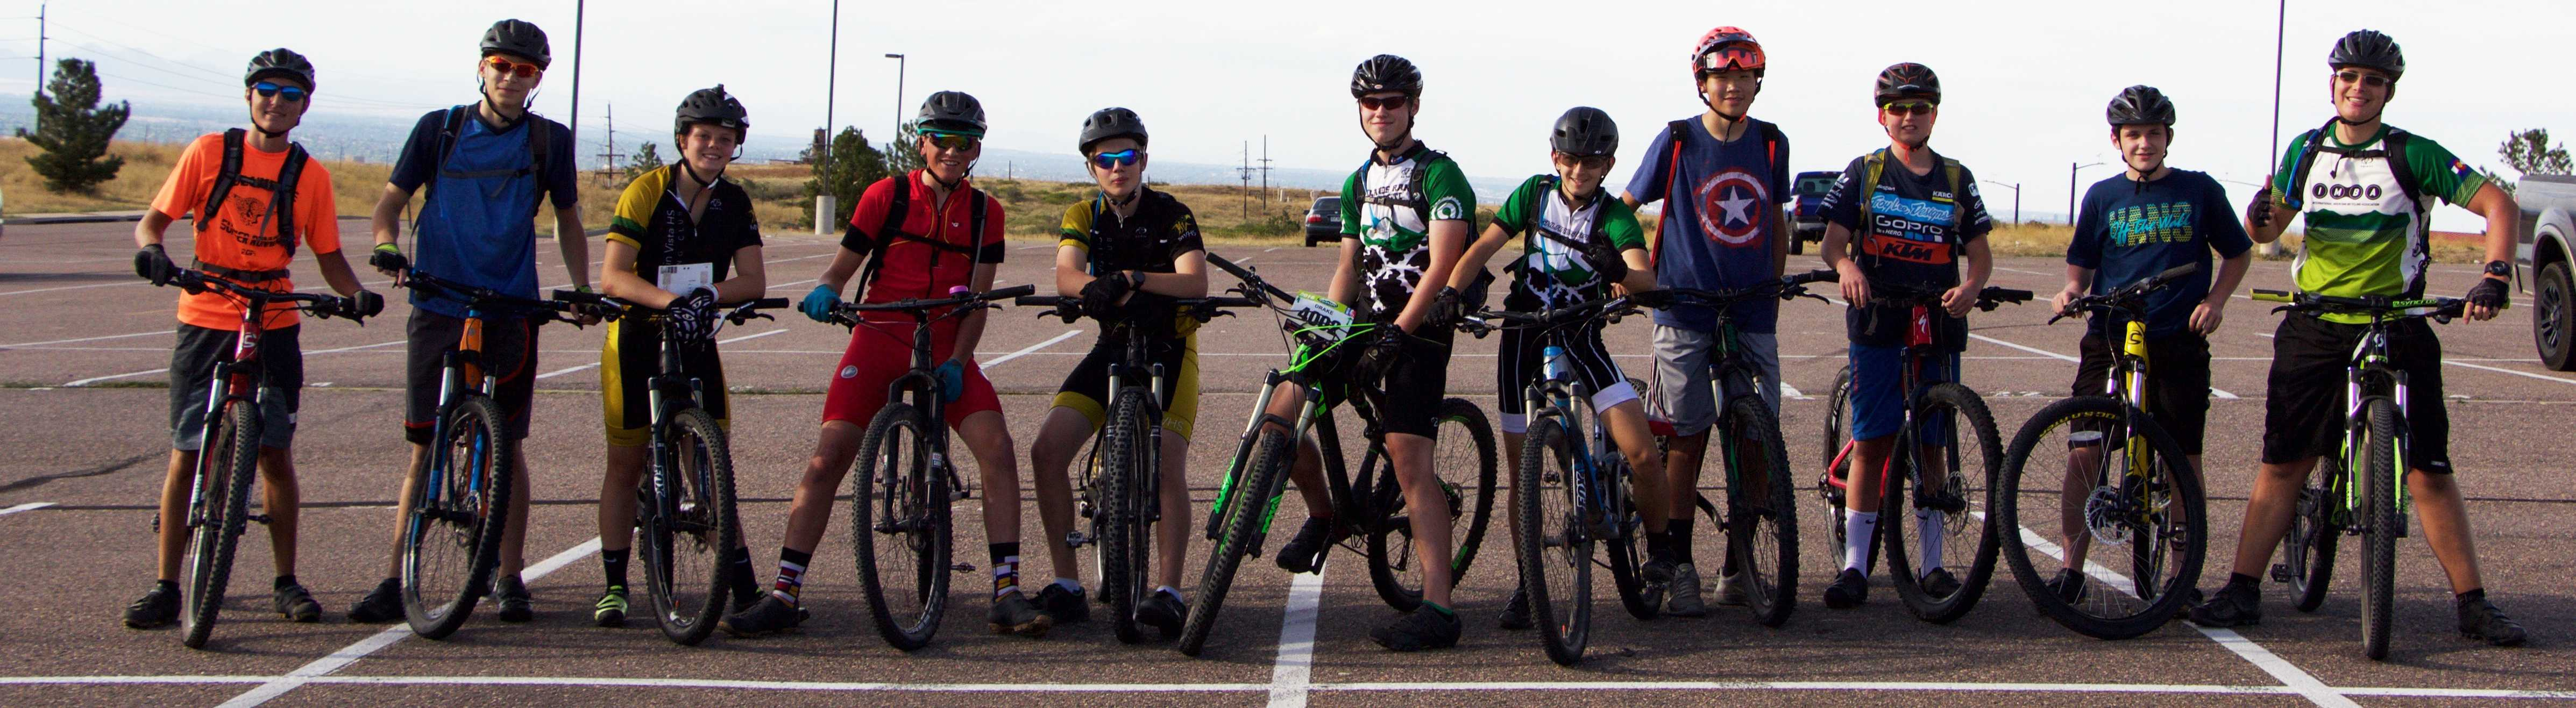 PHOTOS: Mountain Biking Club